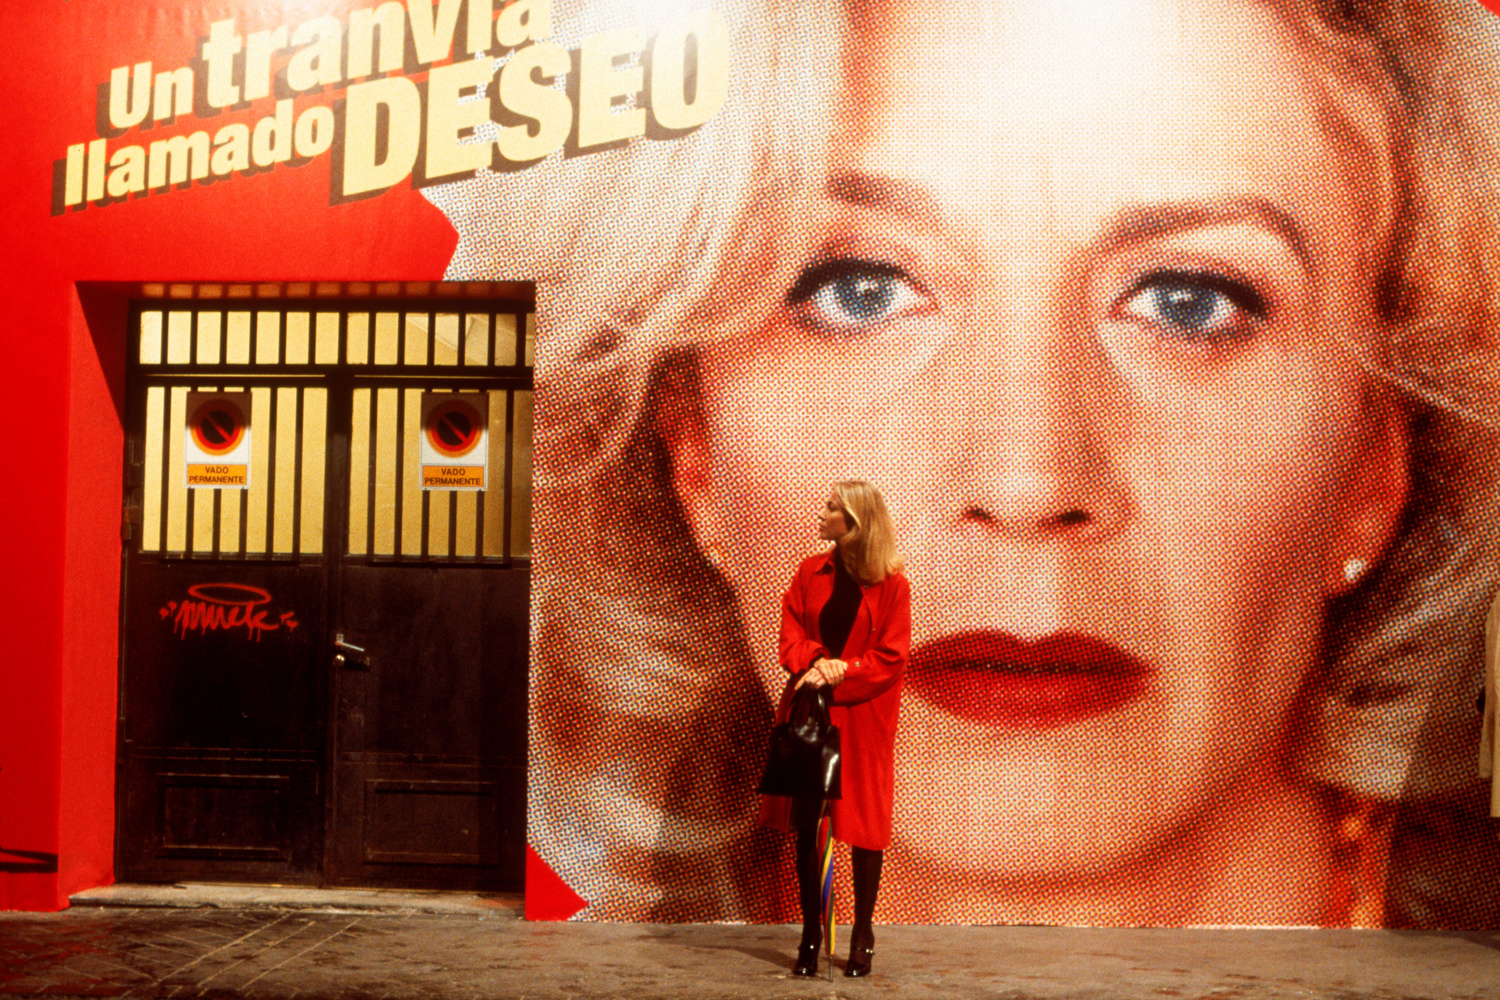 Todo sobre mi madre (All about My Mother). 1999. Spain. Directed by Pedro Almodóvar. Courtesy Sony Pictures Classics